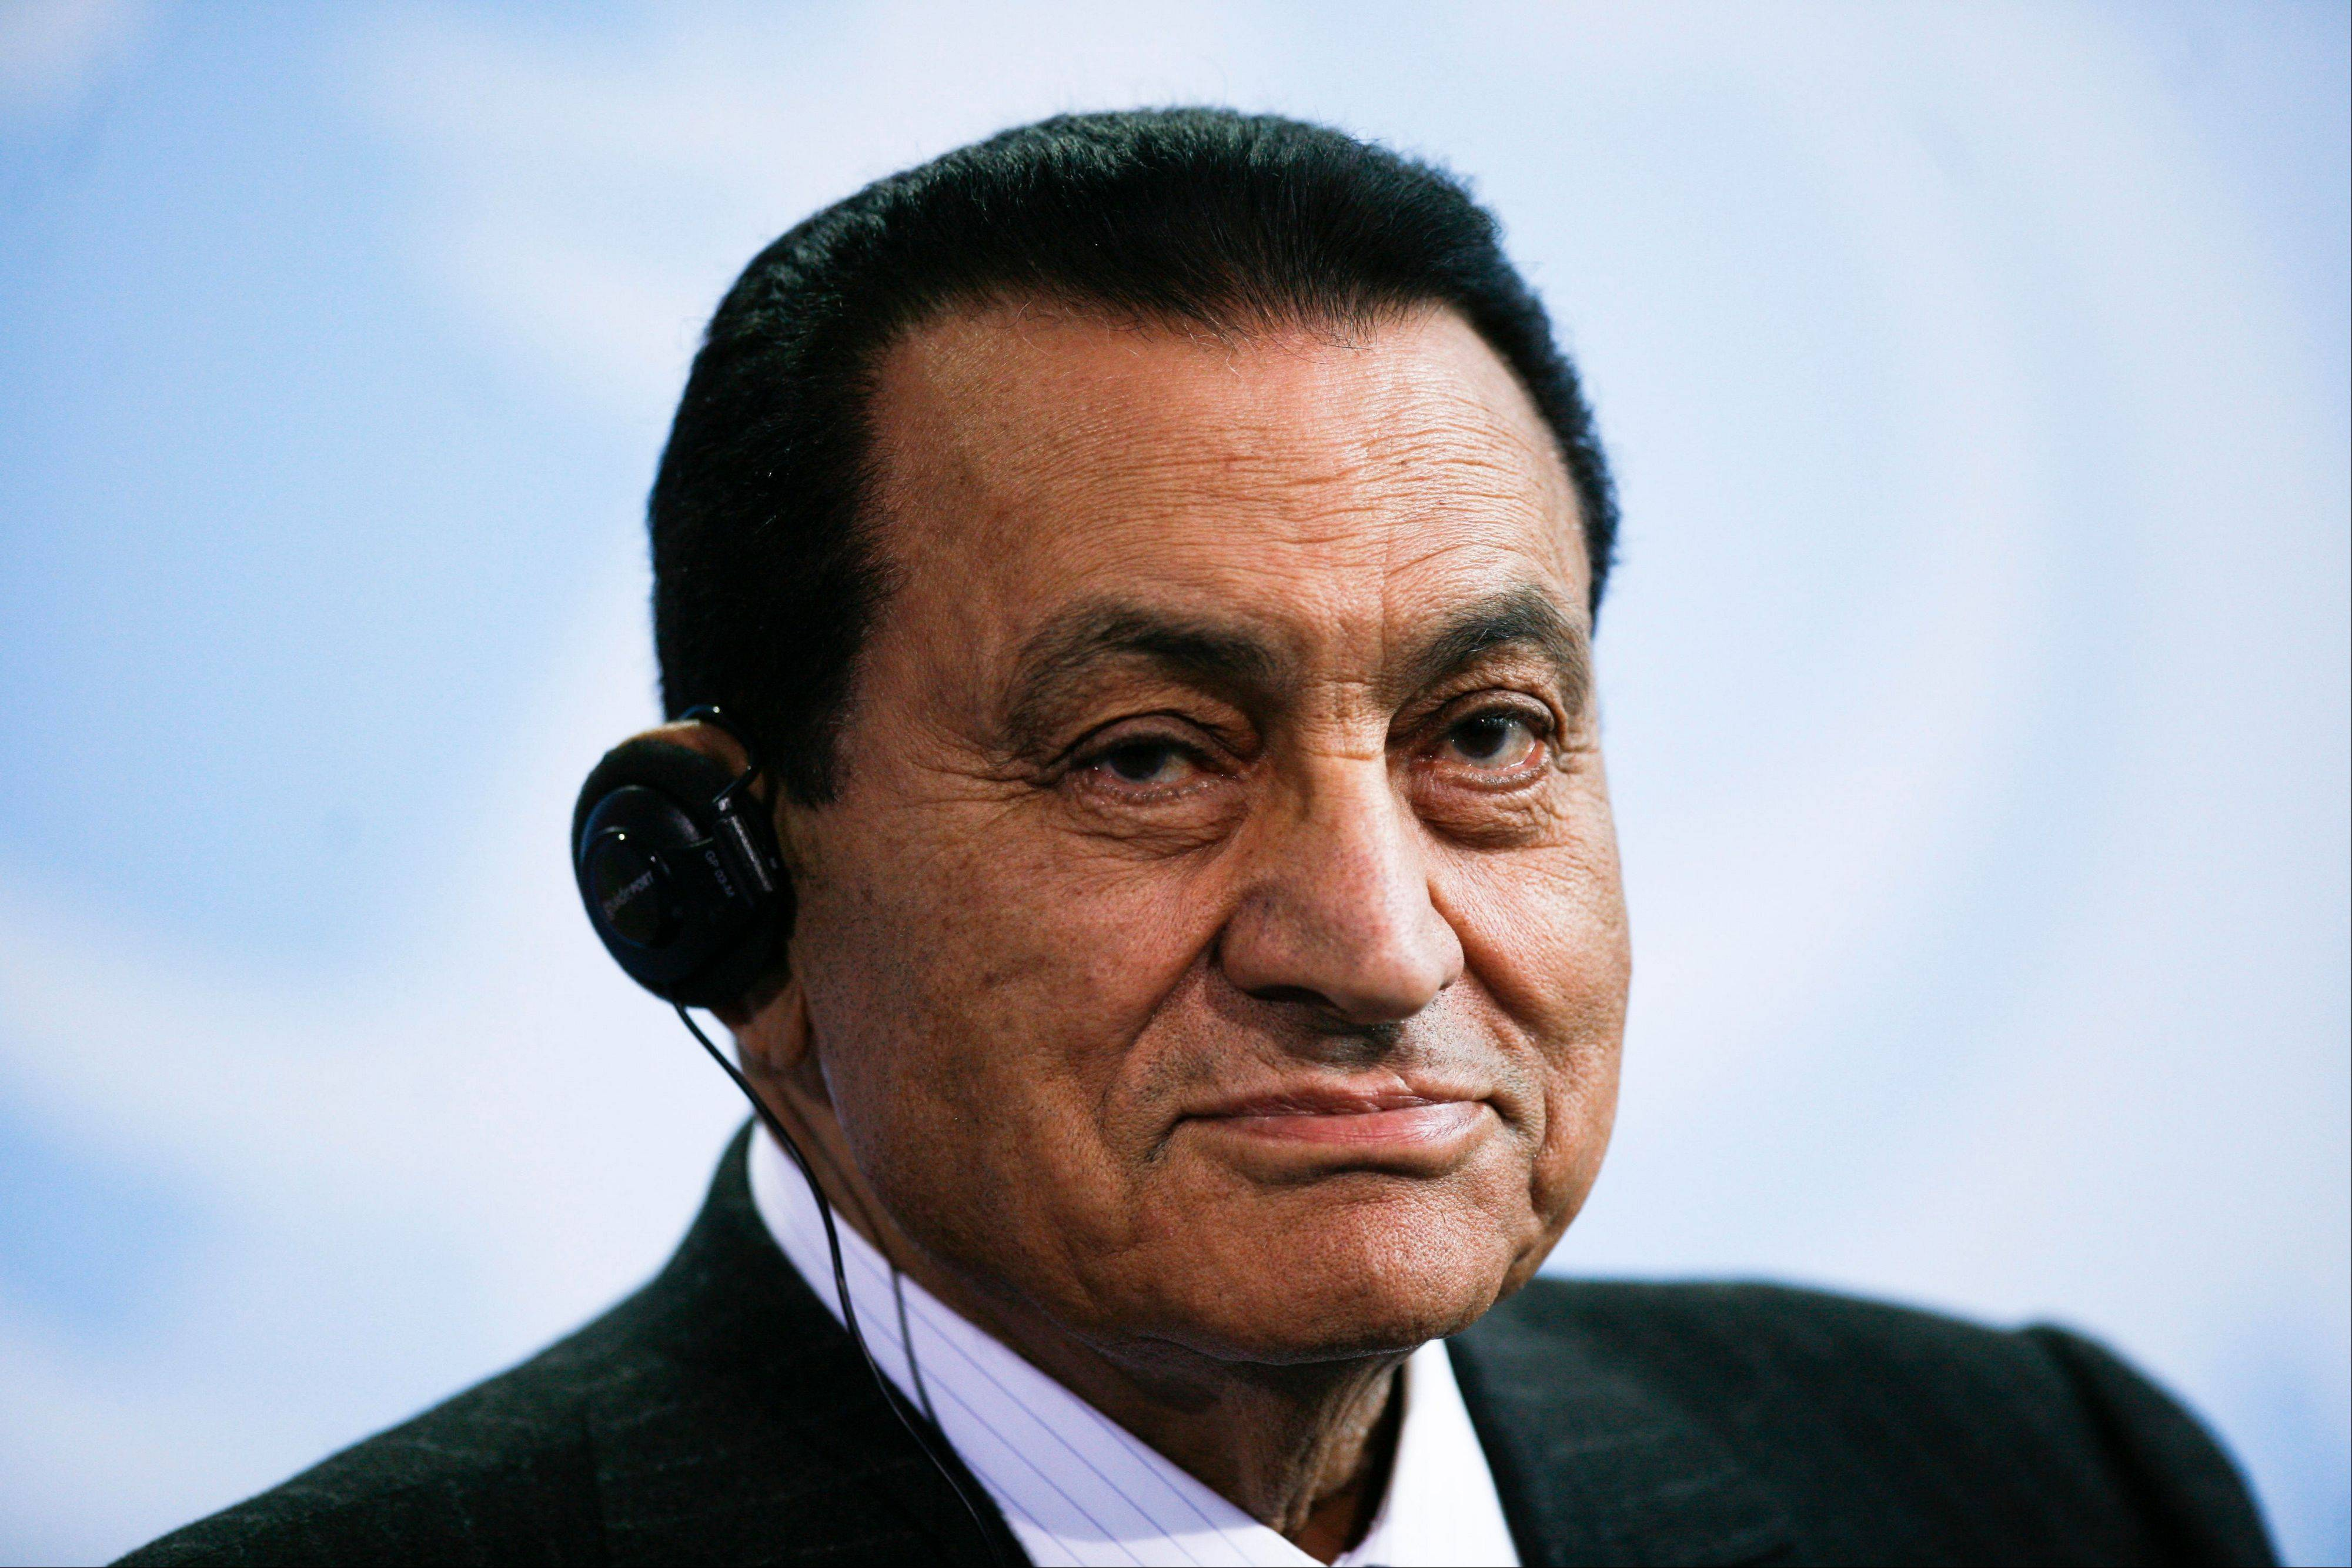 An Egyptian court has ordered the release of ex-President Hosni Mubarak, but it�s not immediately clear whether the prosecutors will appeal the order.